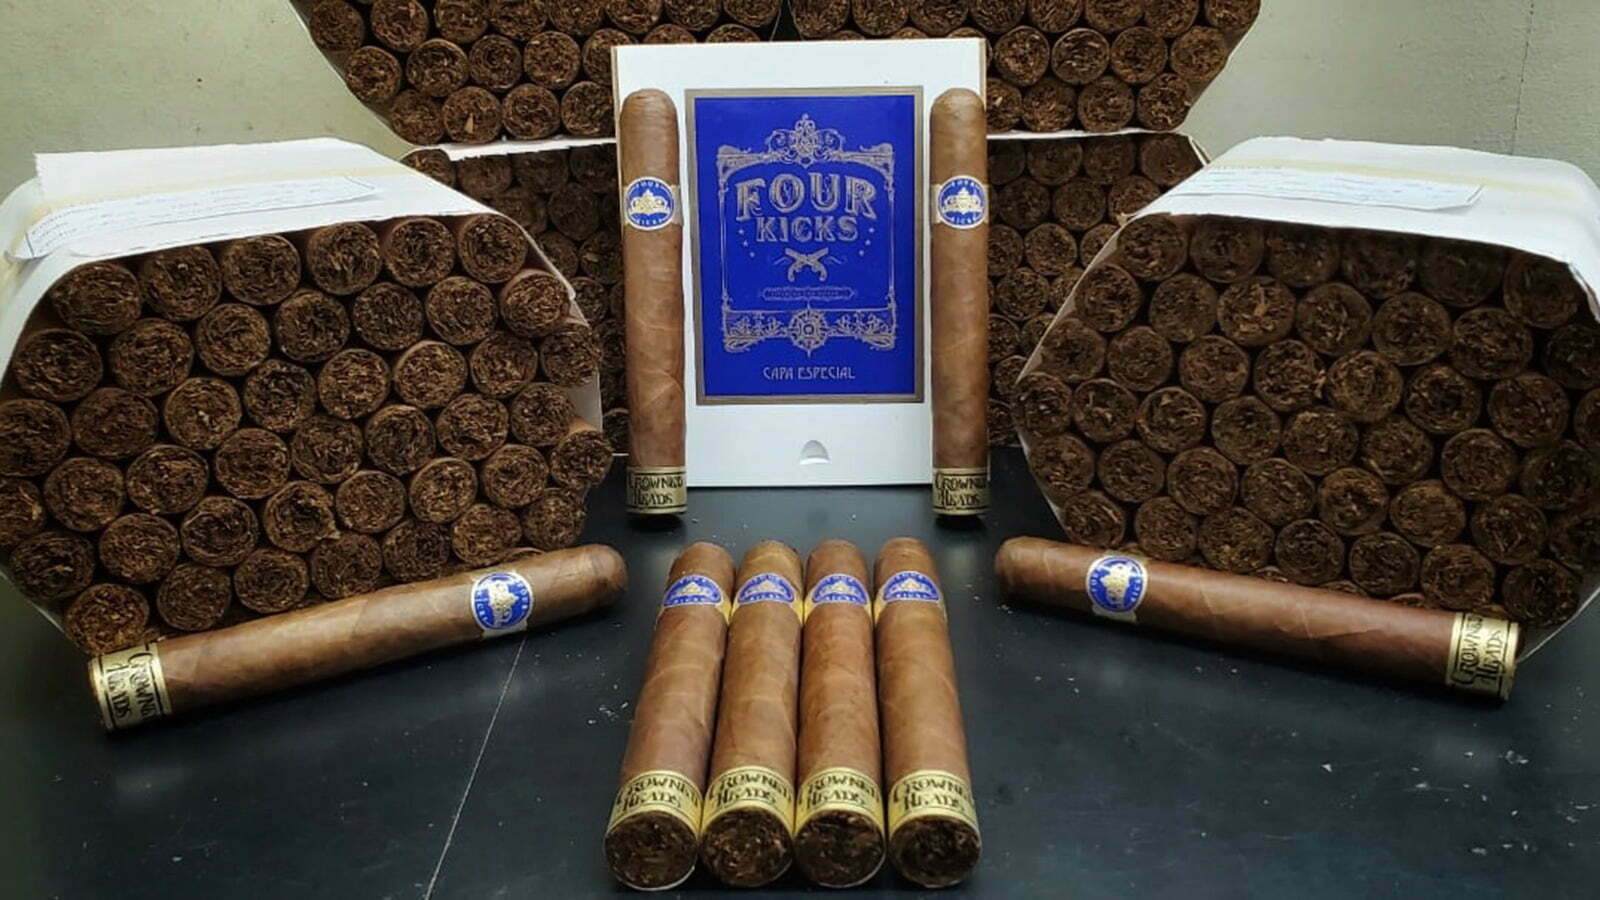 Debutta il nuovo Crowned Heads Four Kicks Capa Especial